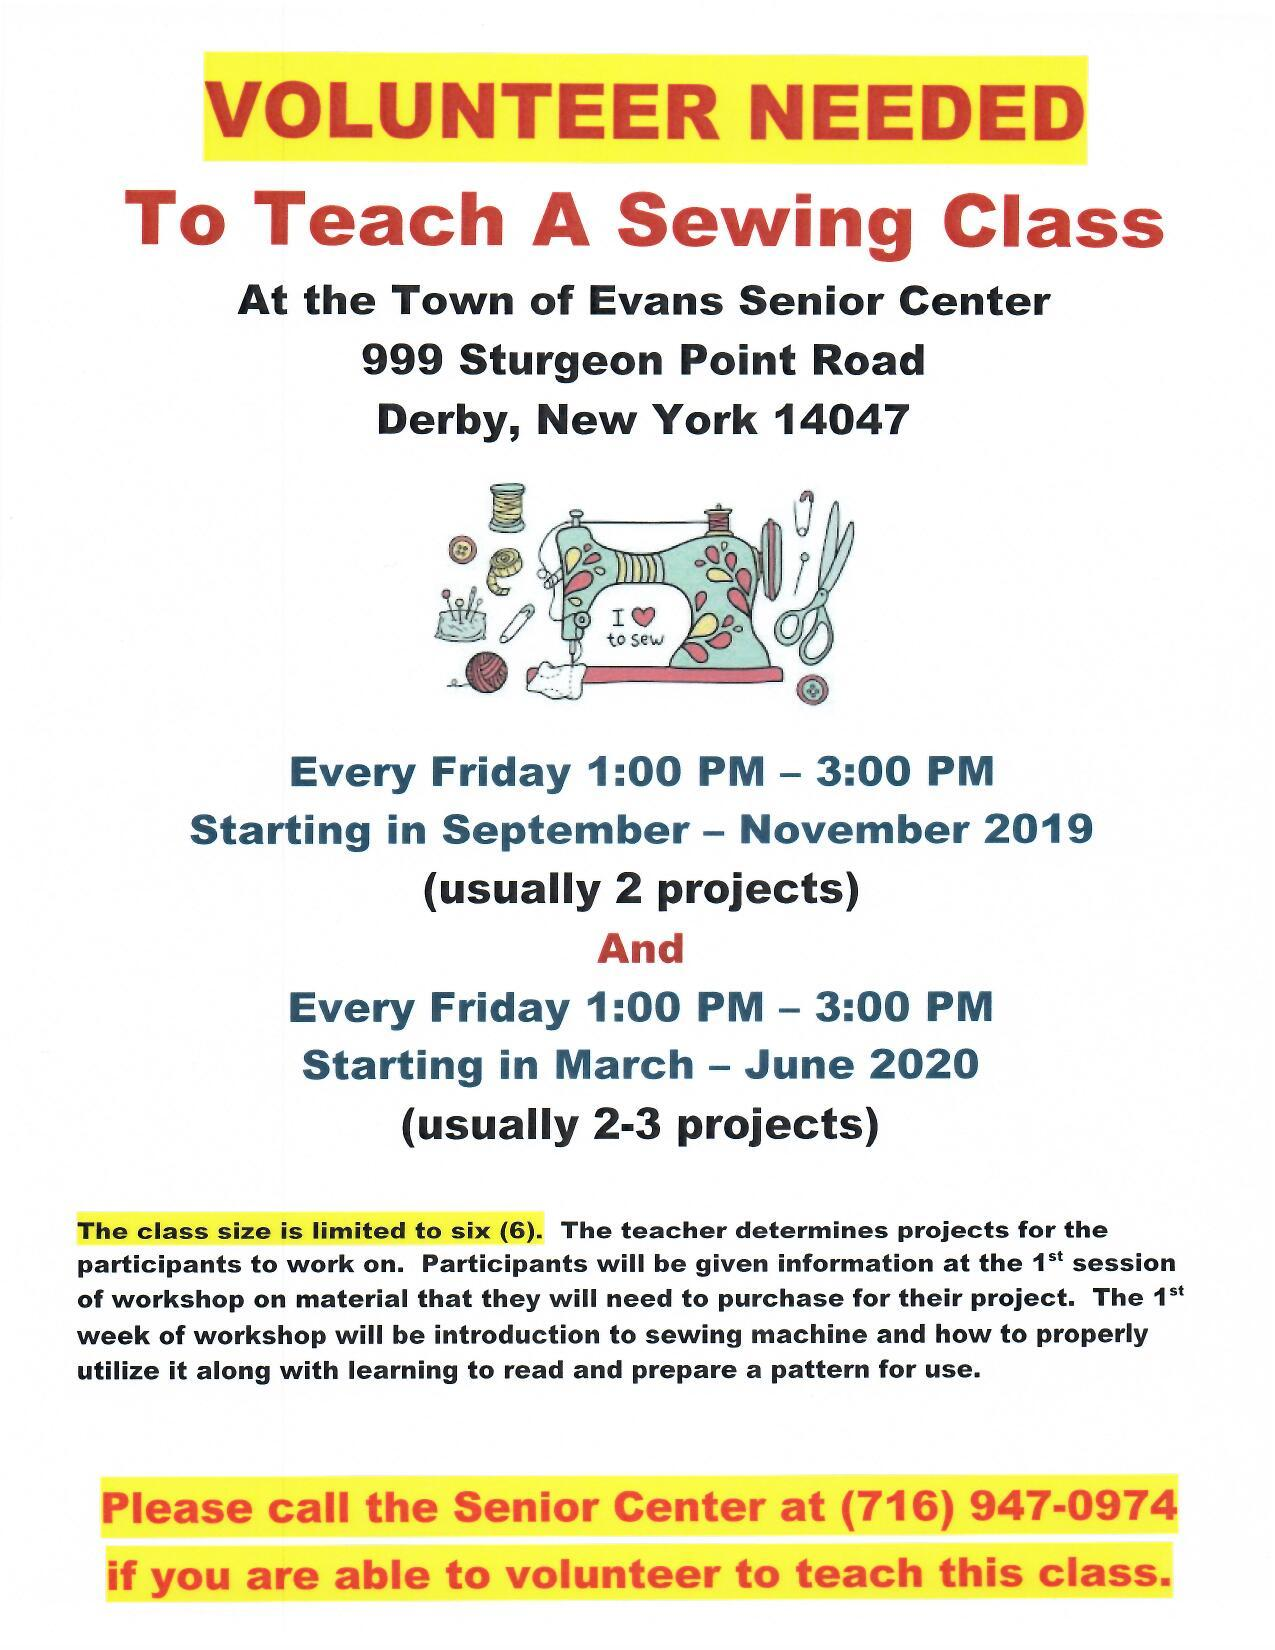 VOLUNTEER NEEDED Fall 2019 Senior Center Sewing